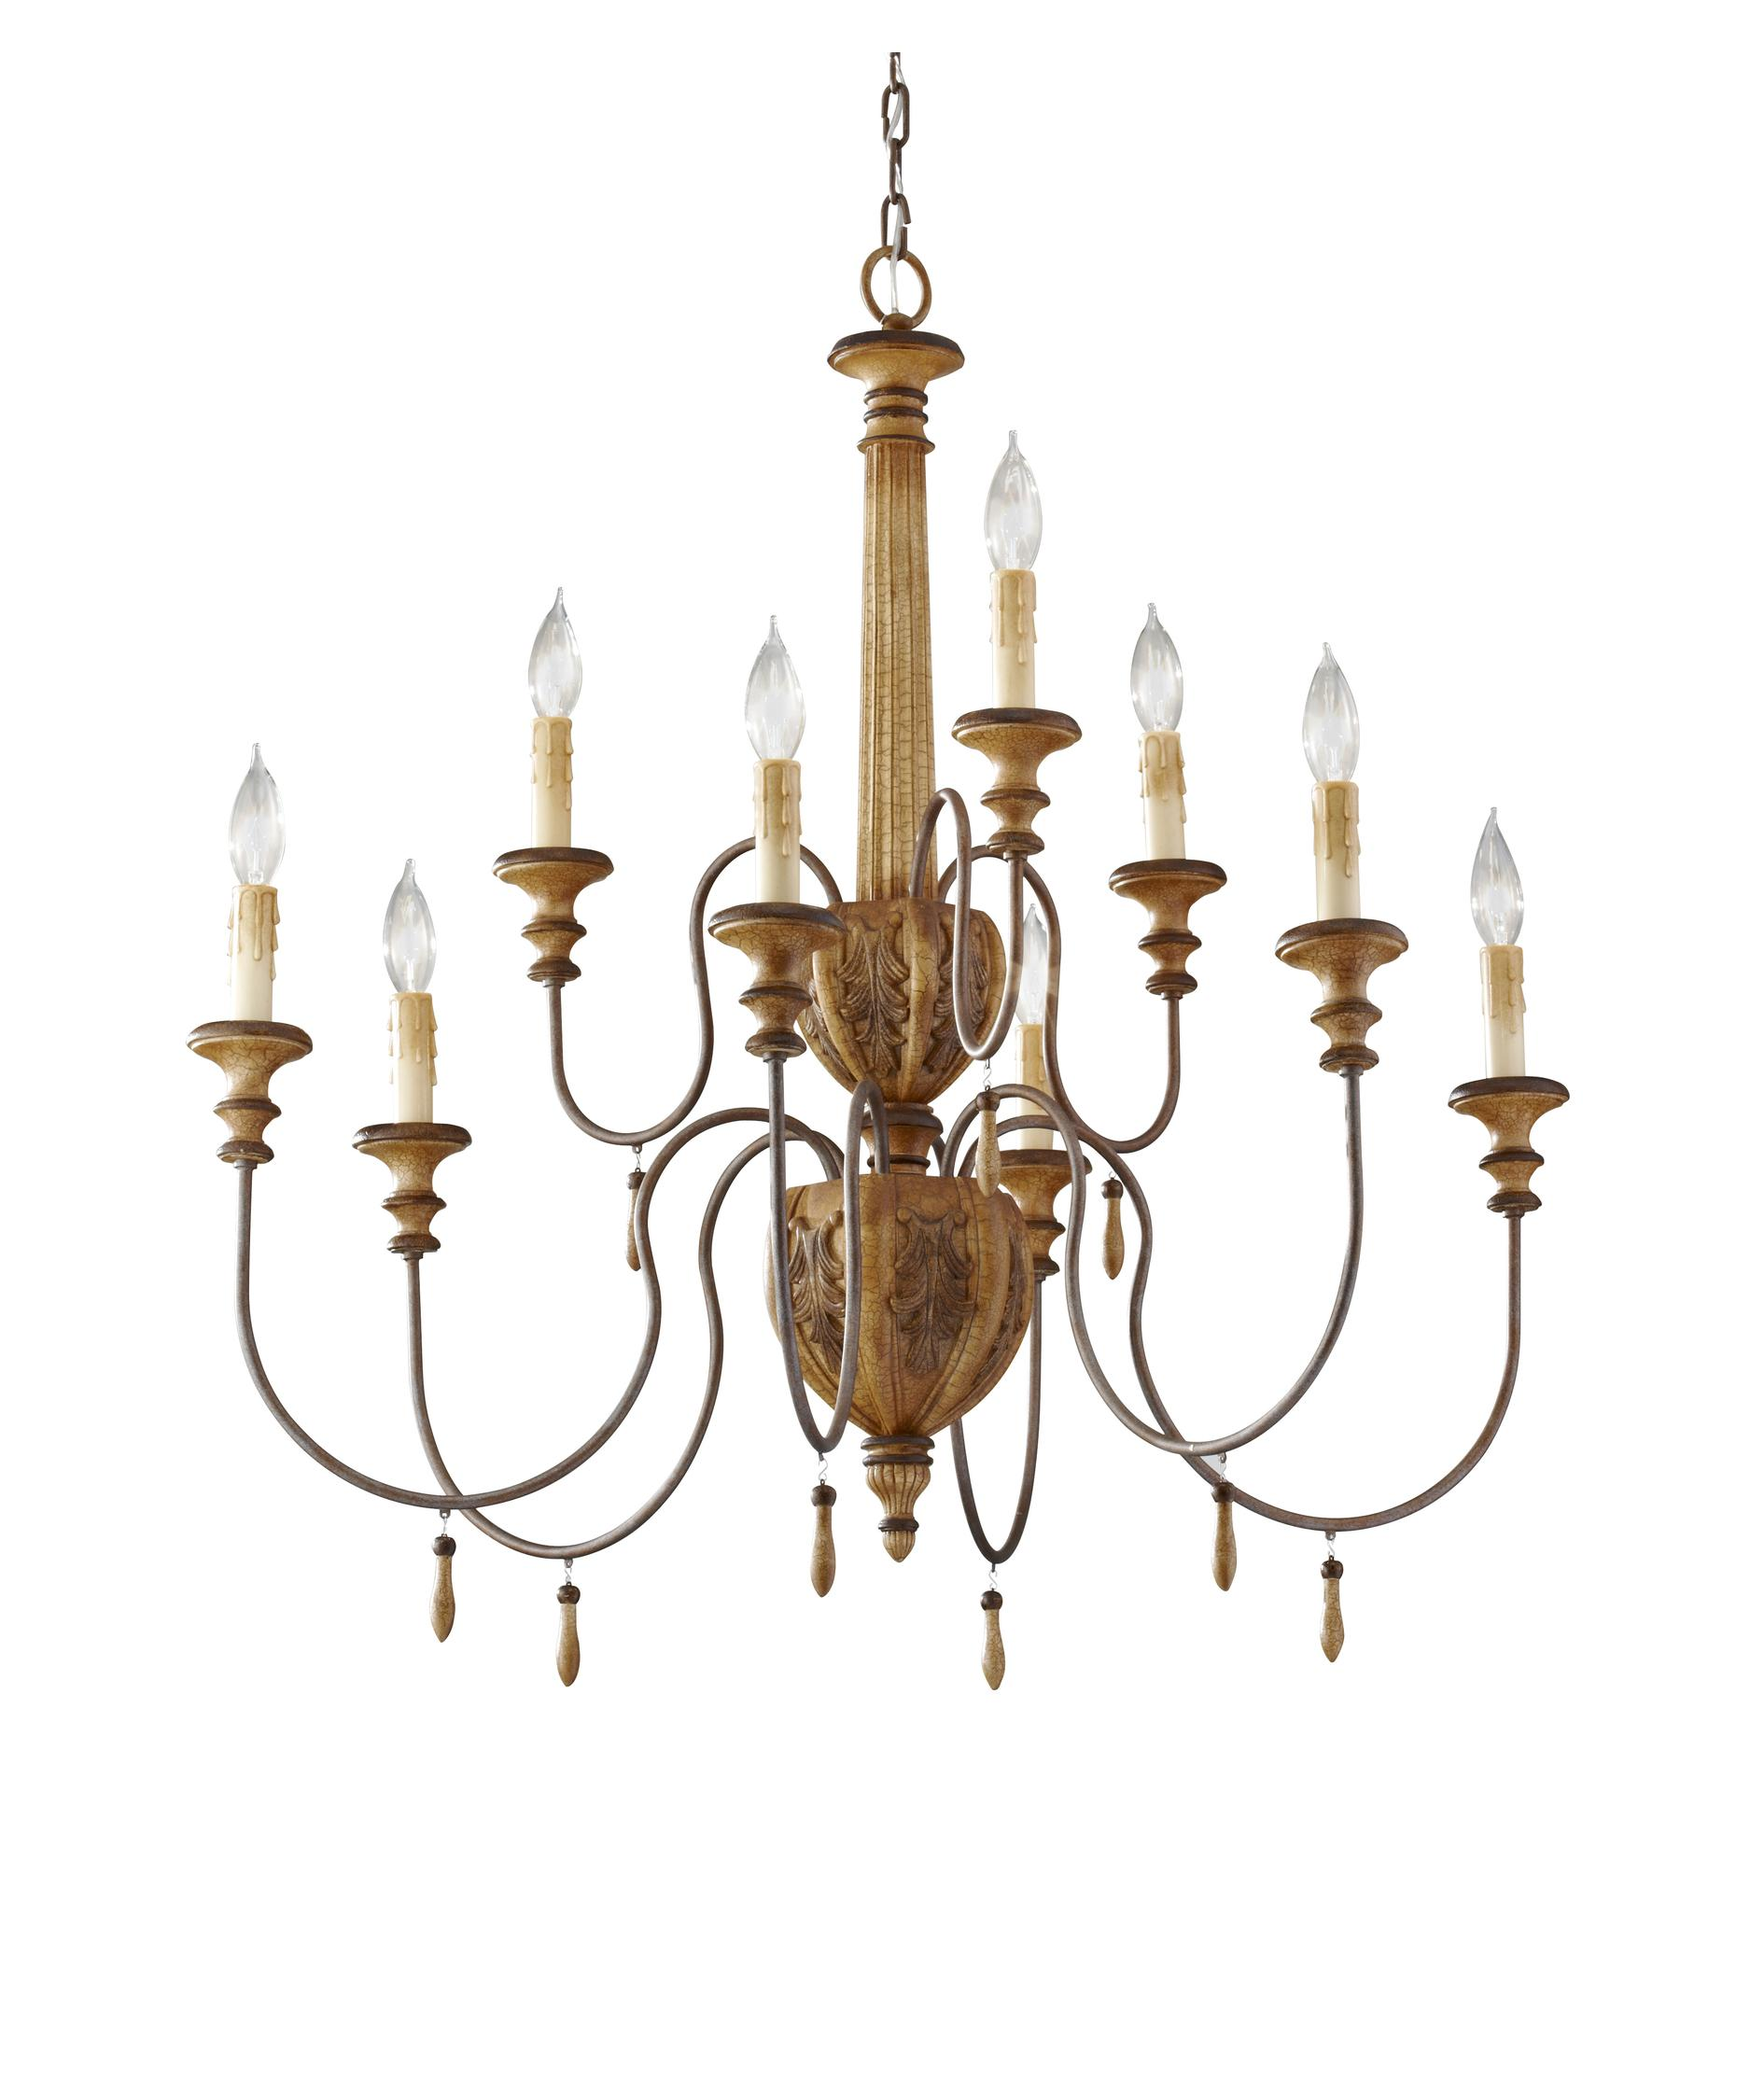 Murray Feiss Annabelle 32 Inch Wide 9 Light Chandelier – Murray Feiss Chandeliers